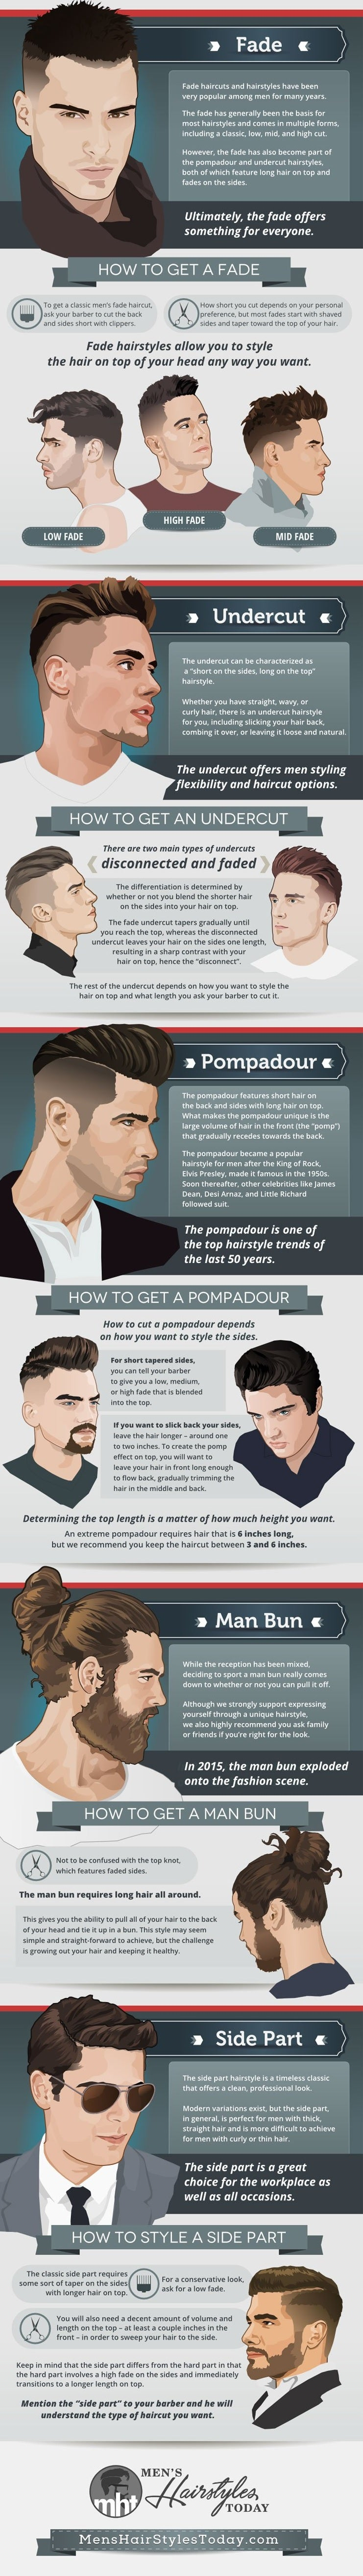 Men's hairstyles for men 2018